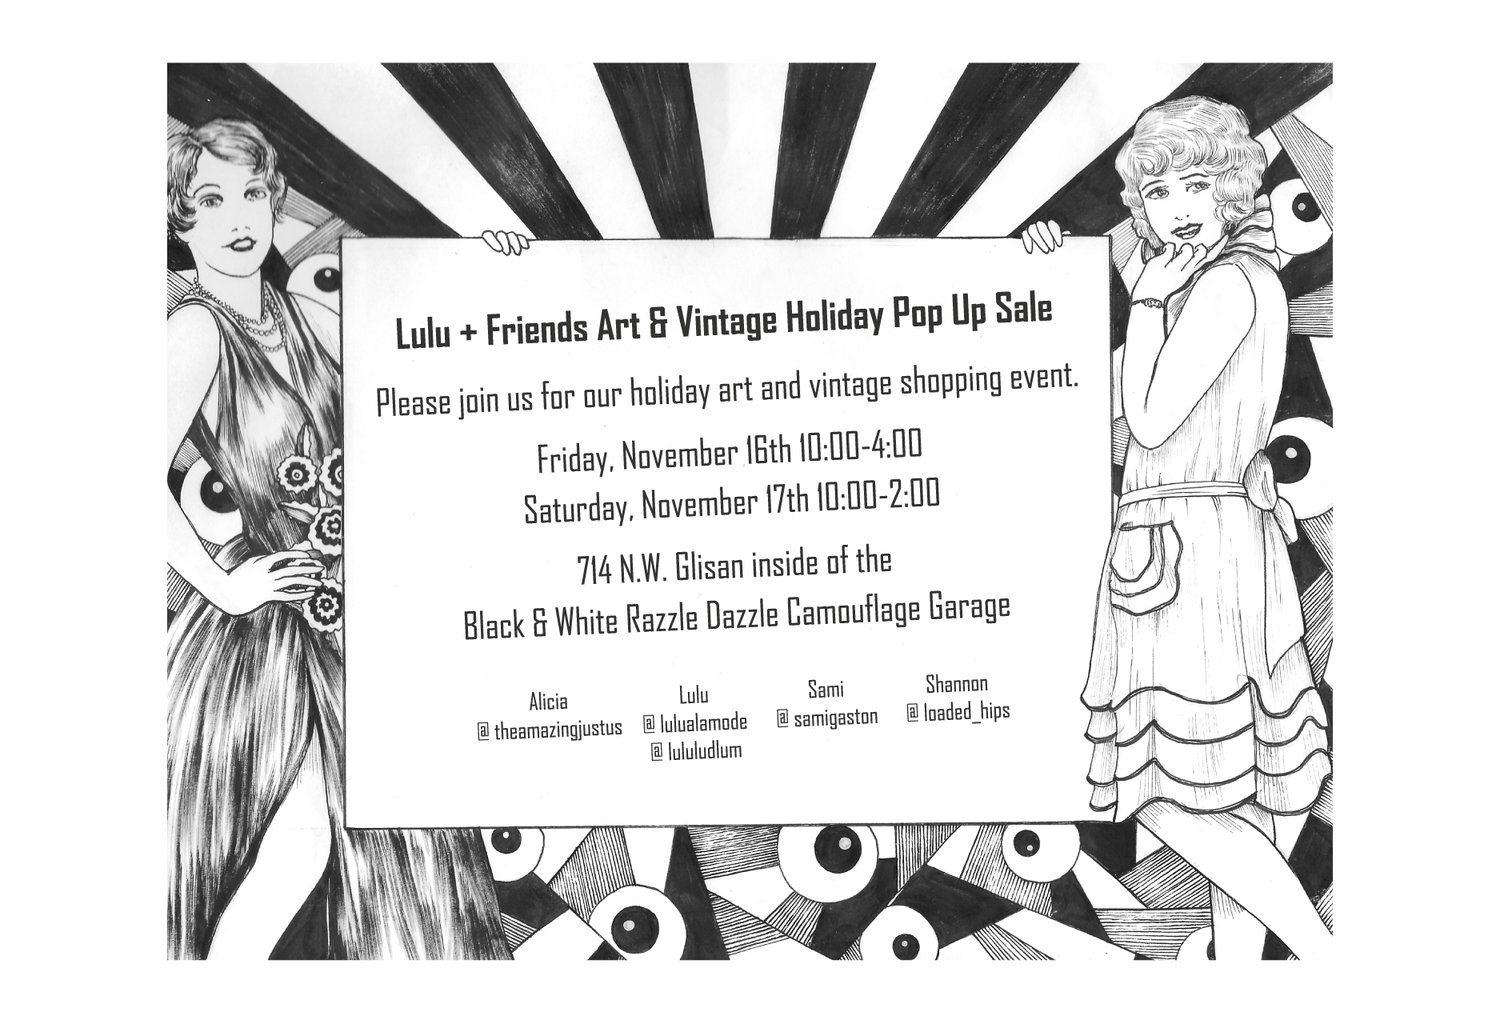 f1c0d7ada4edb Lulu + Friends Art & Vintage Holiday Pop Up Sale Happening Today 11/17/18 —  Lulu's Vintage